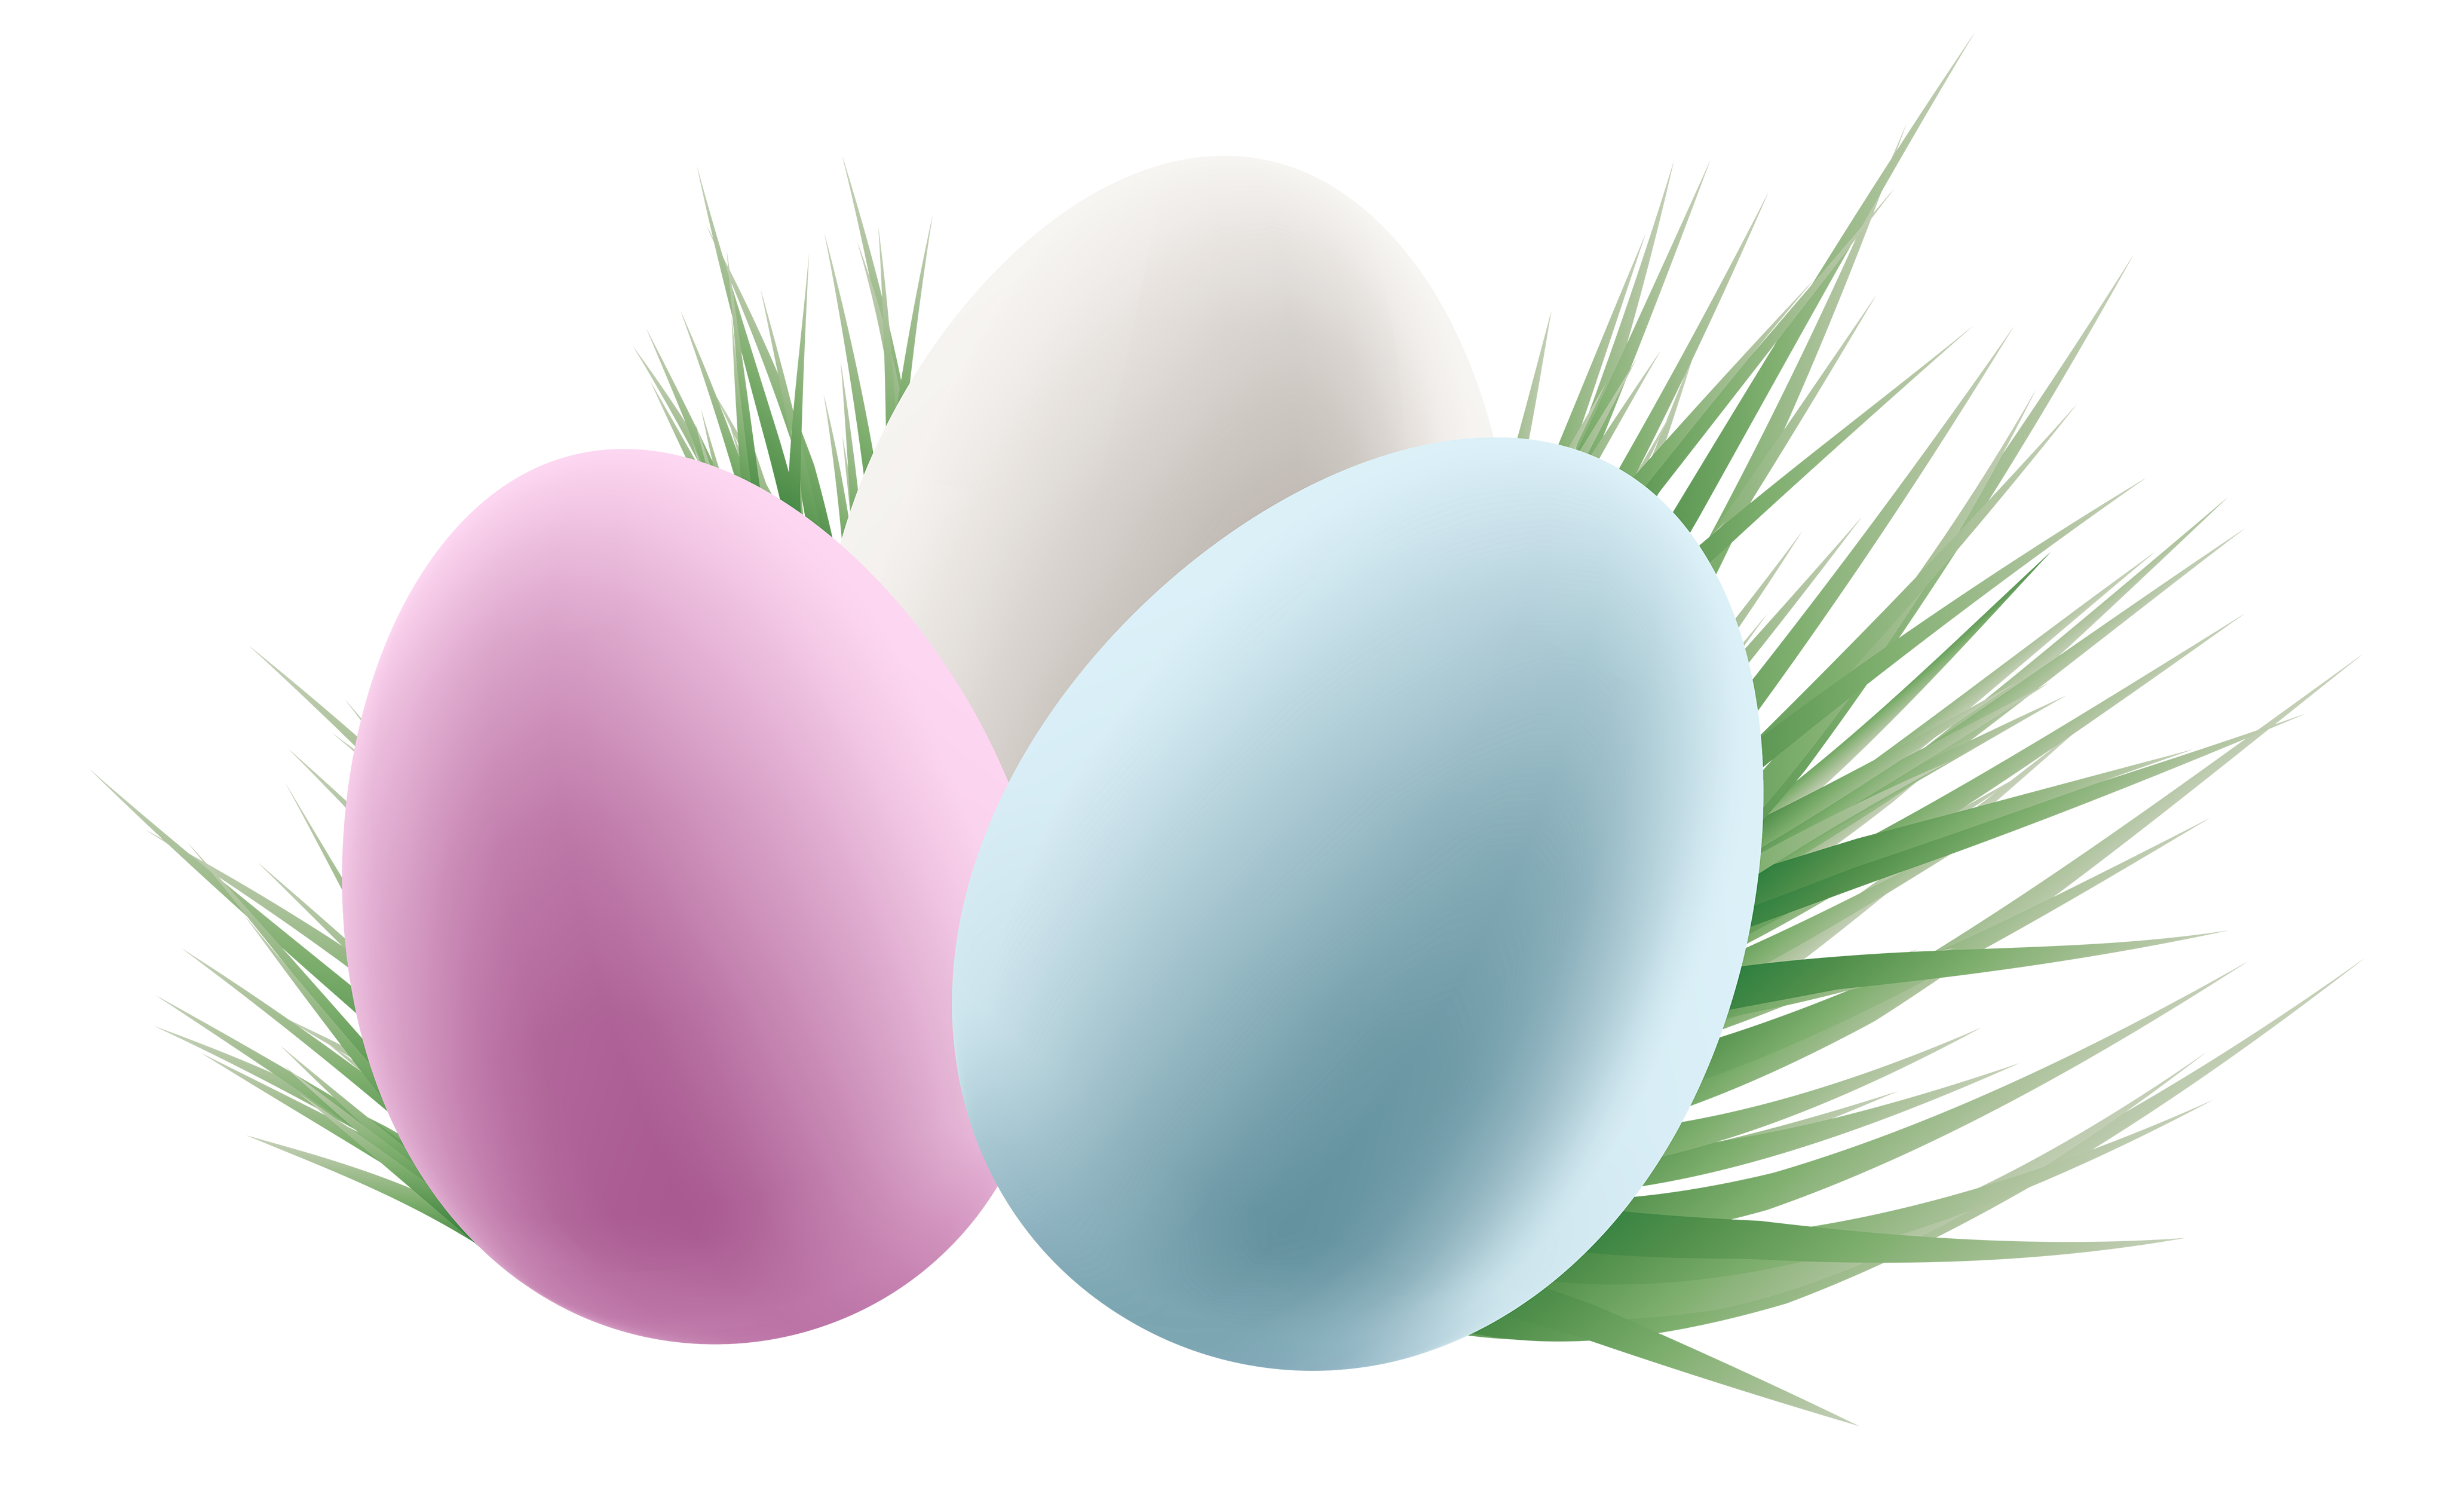 Easter background png. Transparent eggs and grass